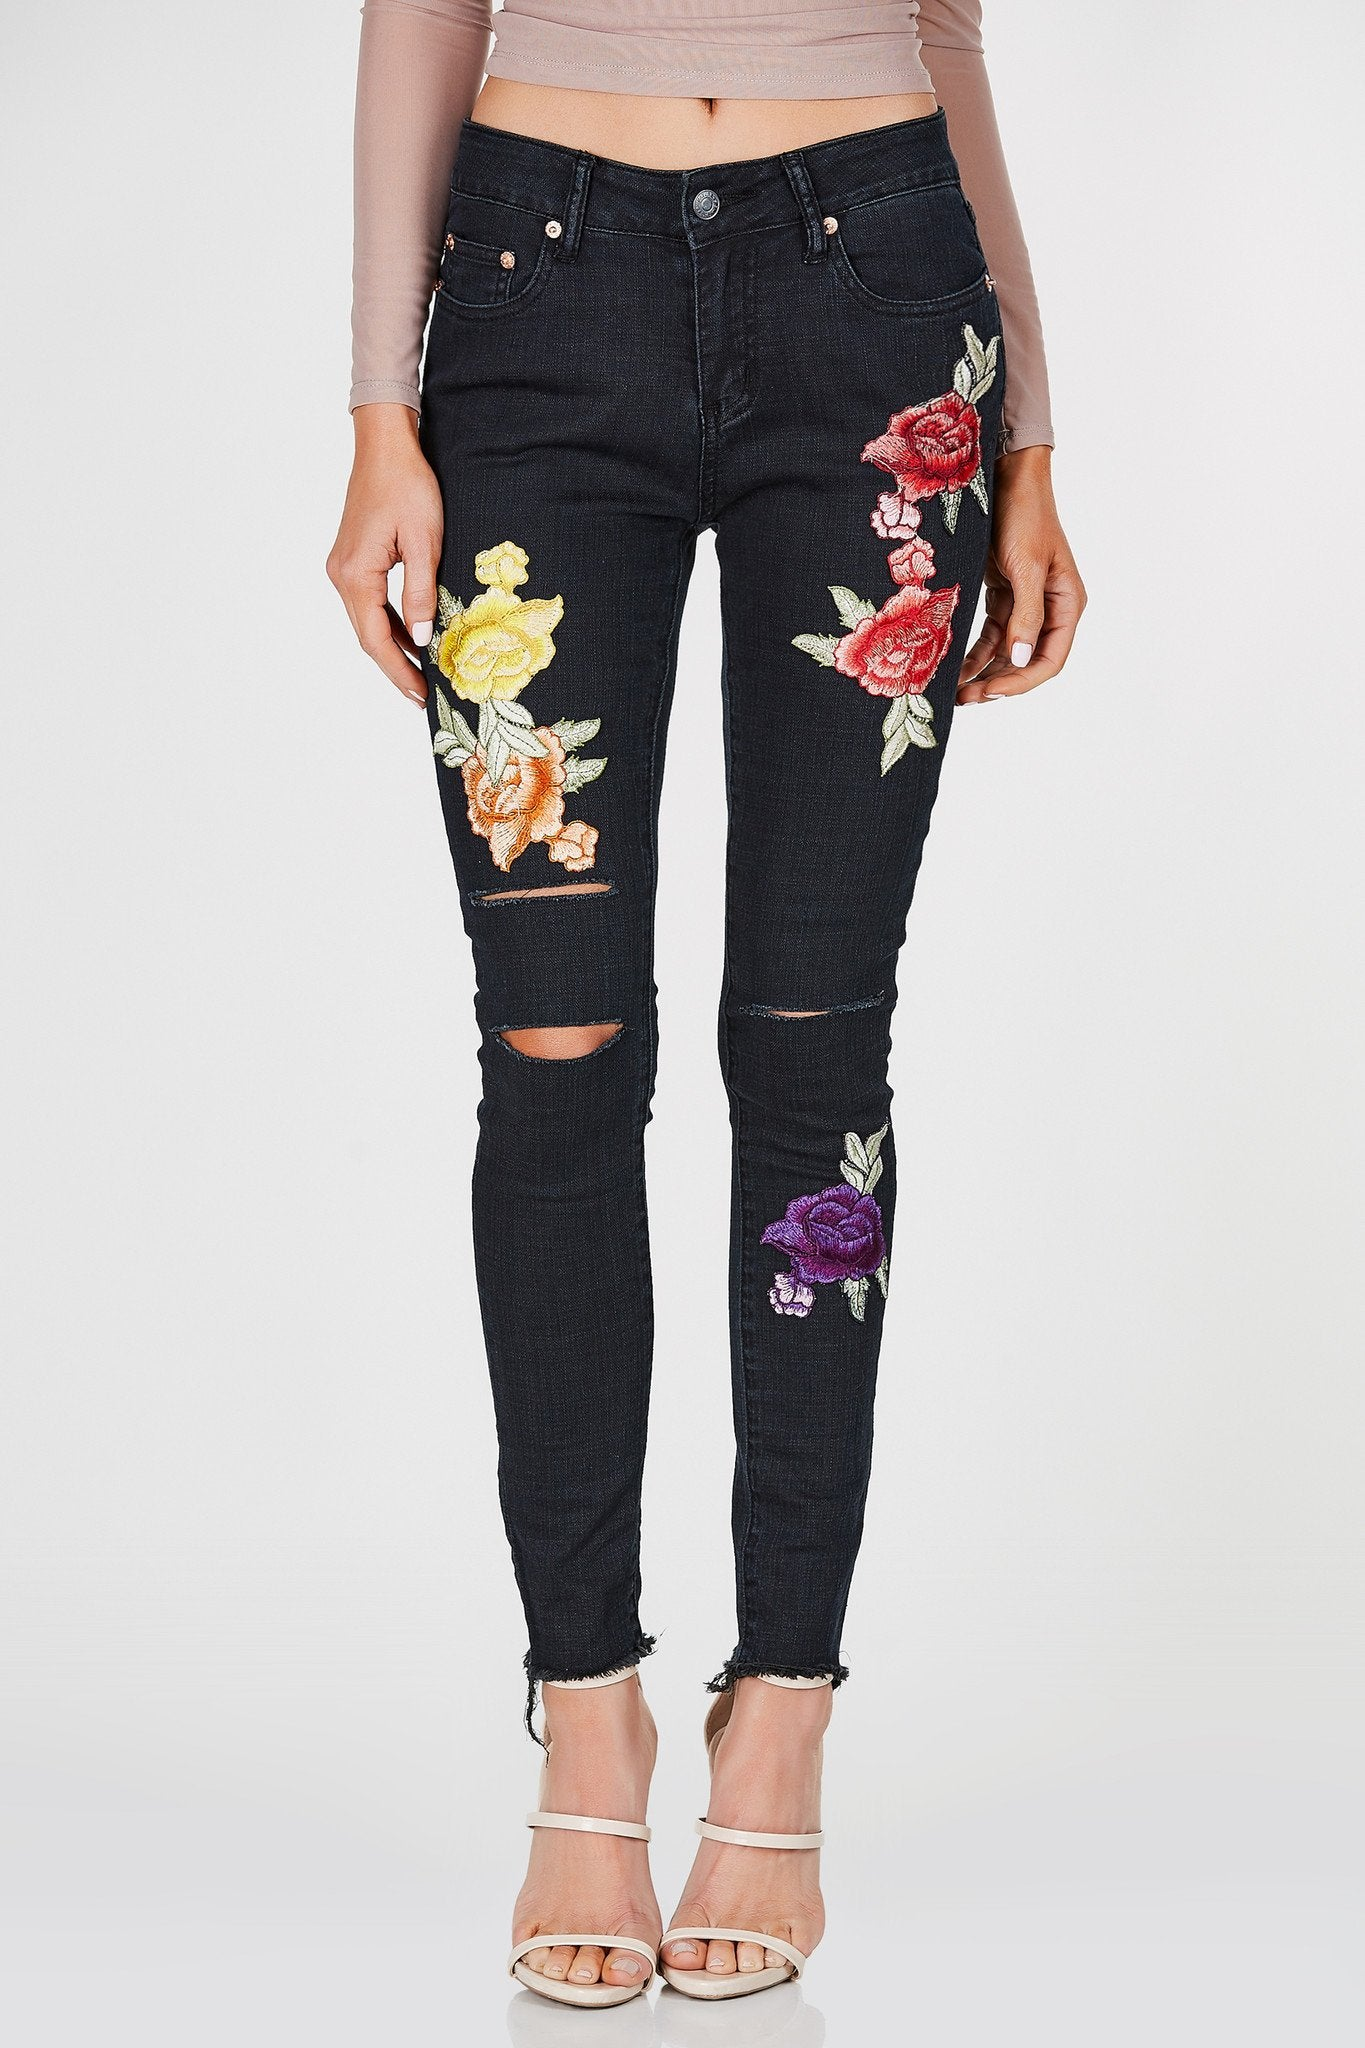 Mid rise dark wash skinnies with flower patches in front. Distressing at knees with raw hem.